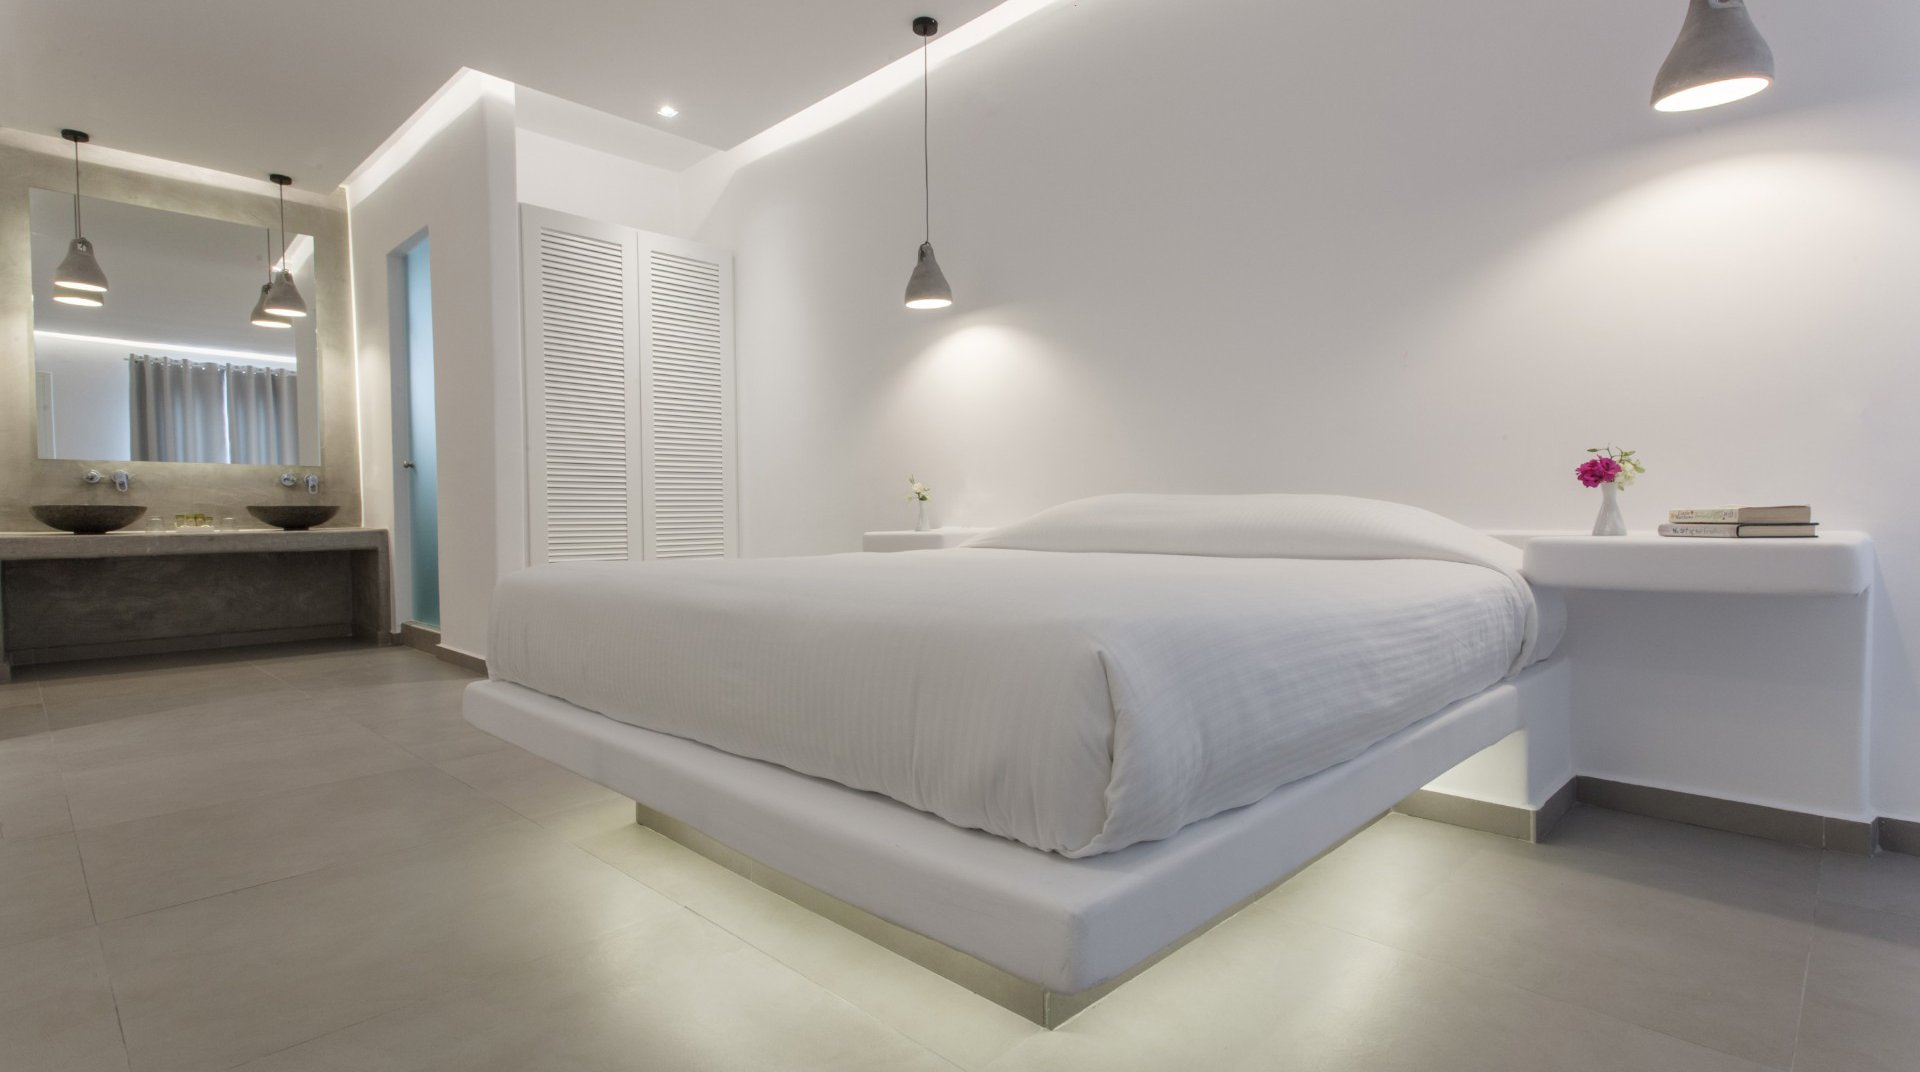 The interior of the suite with the bed, the closet, and in the background the spacious counter with the modern sinks and the huge mirror